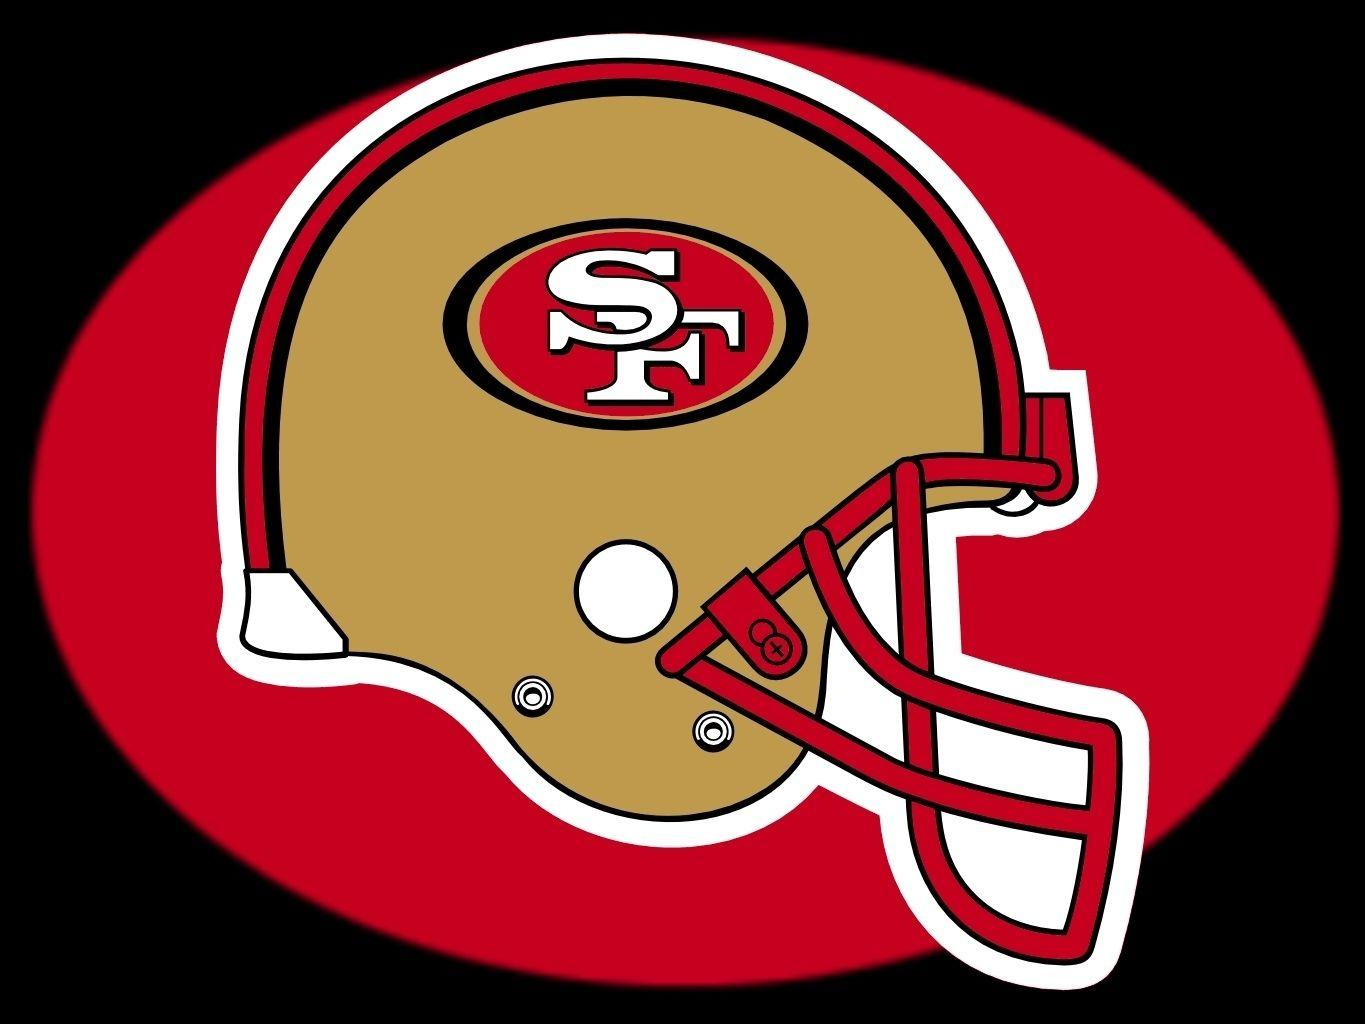 San Francisco 49ers HD Background Wallpaper Download | Sport HD ...